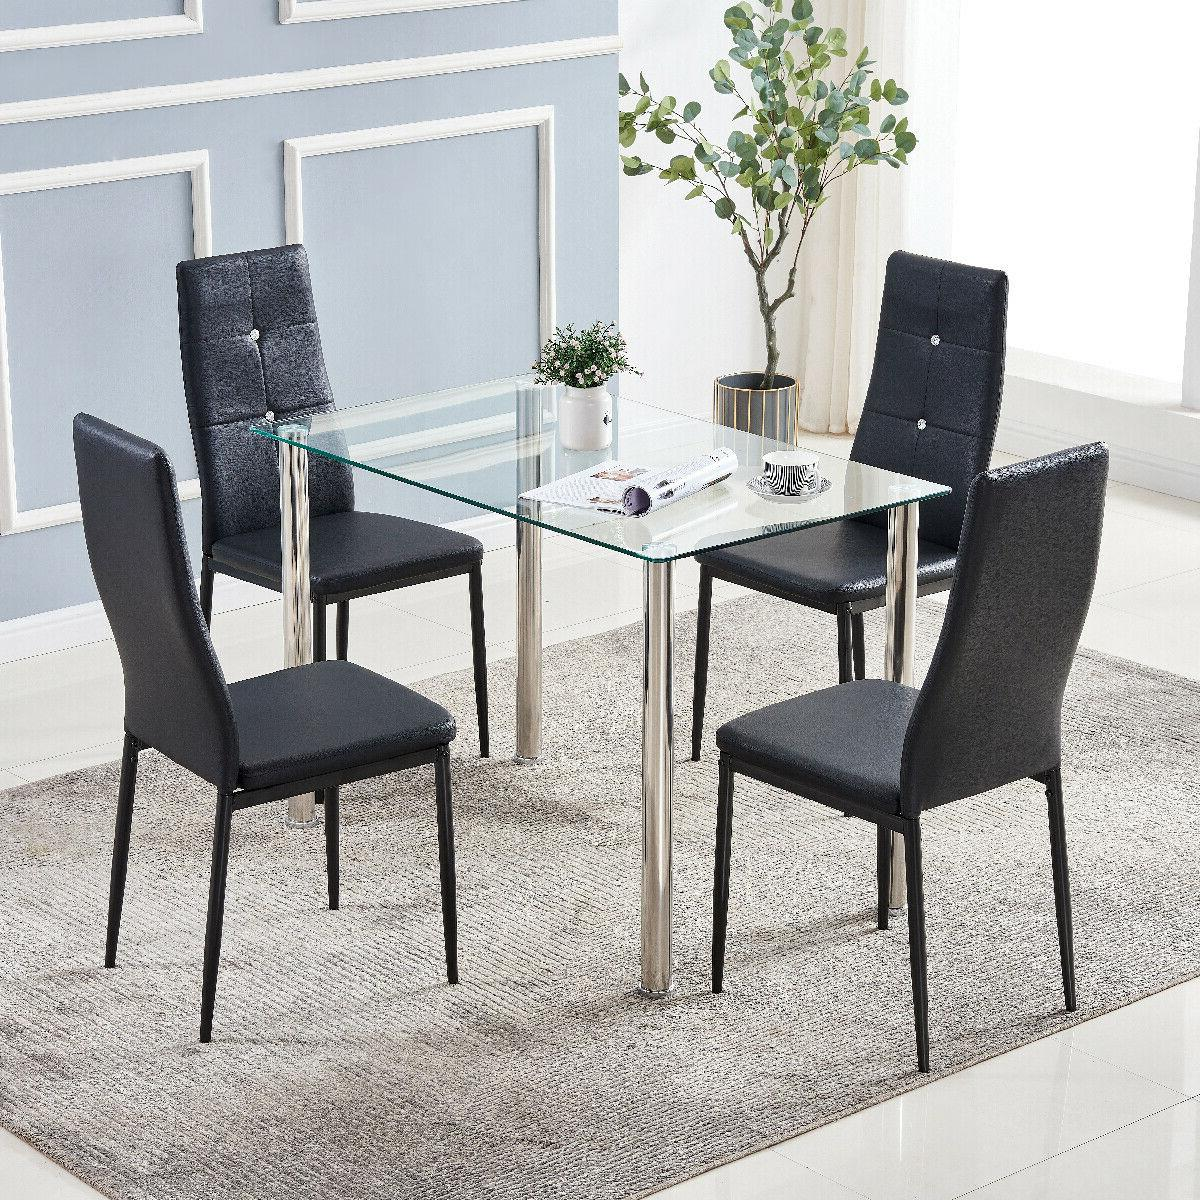 Set of Dining Metal Table Chairs Furniture